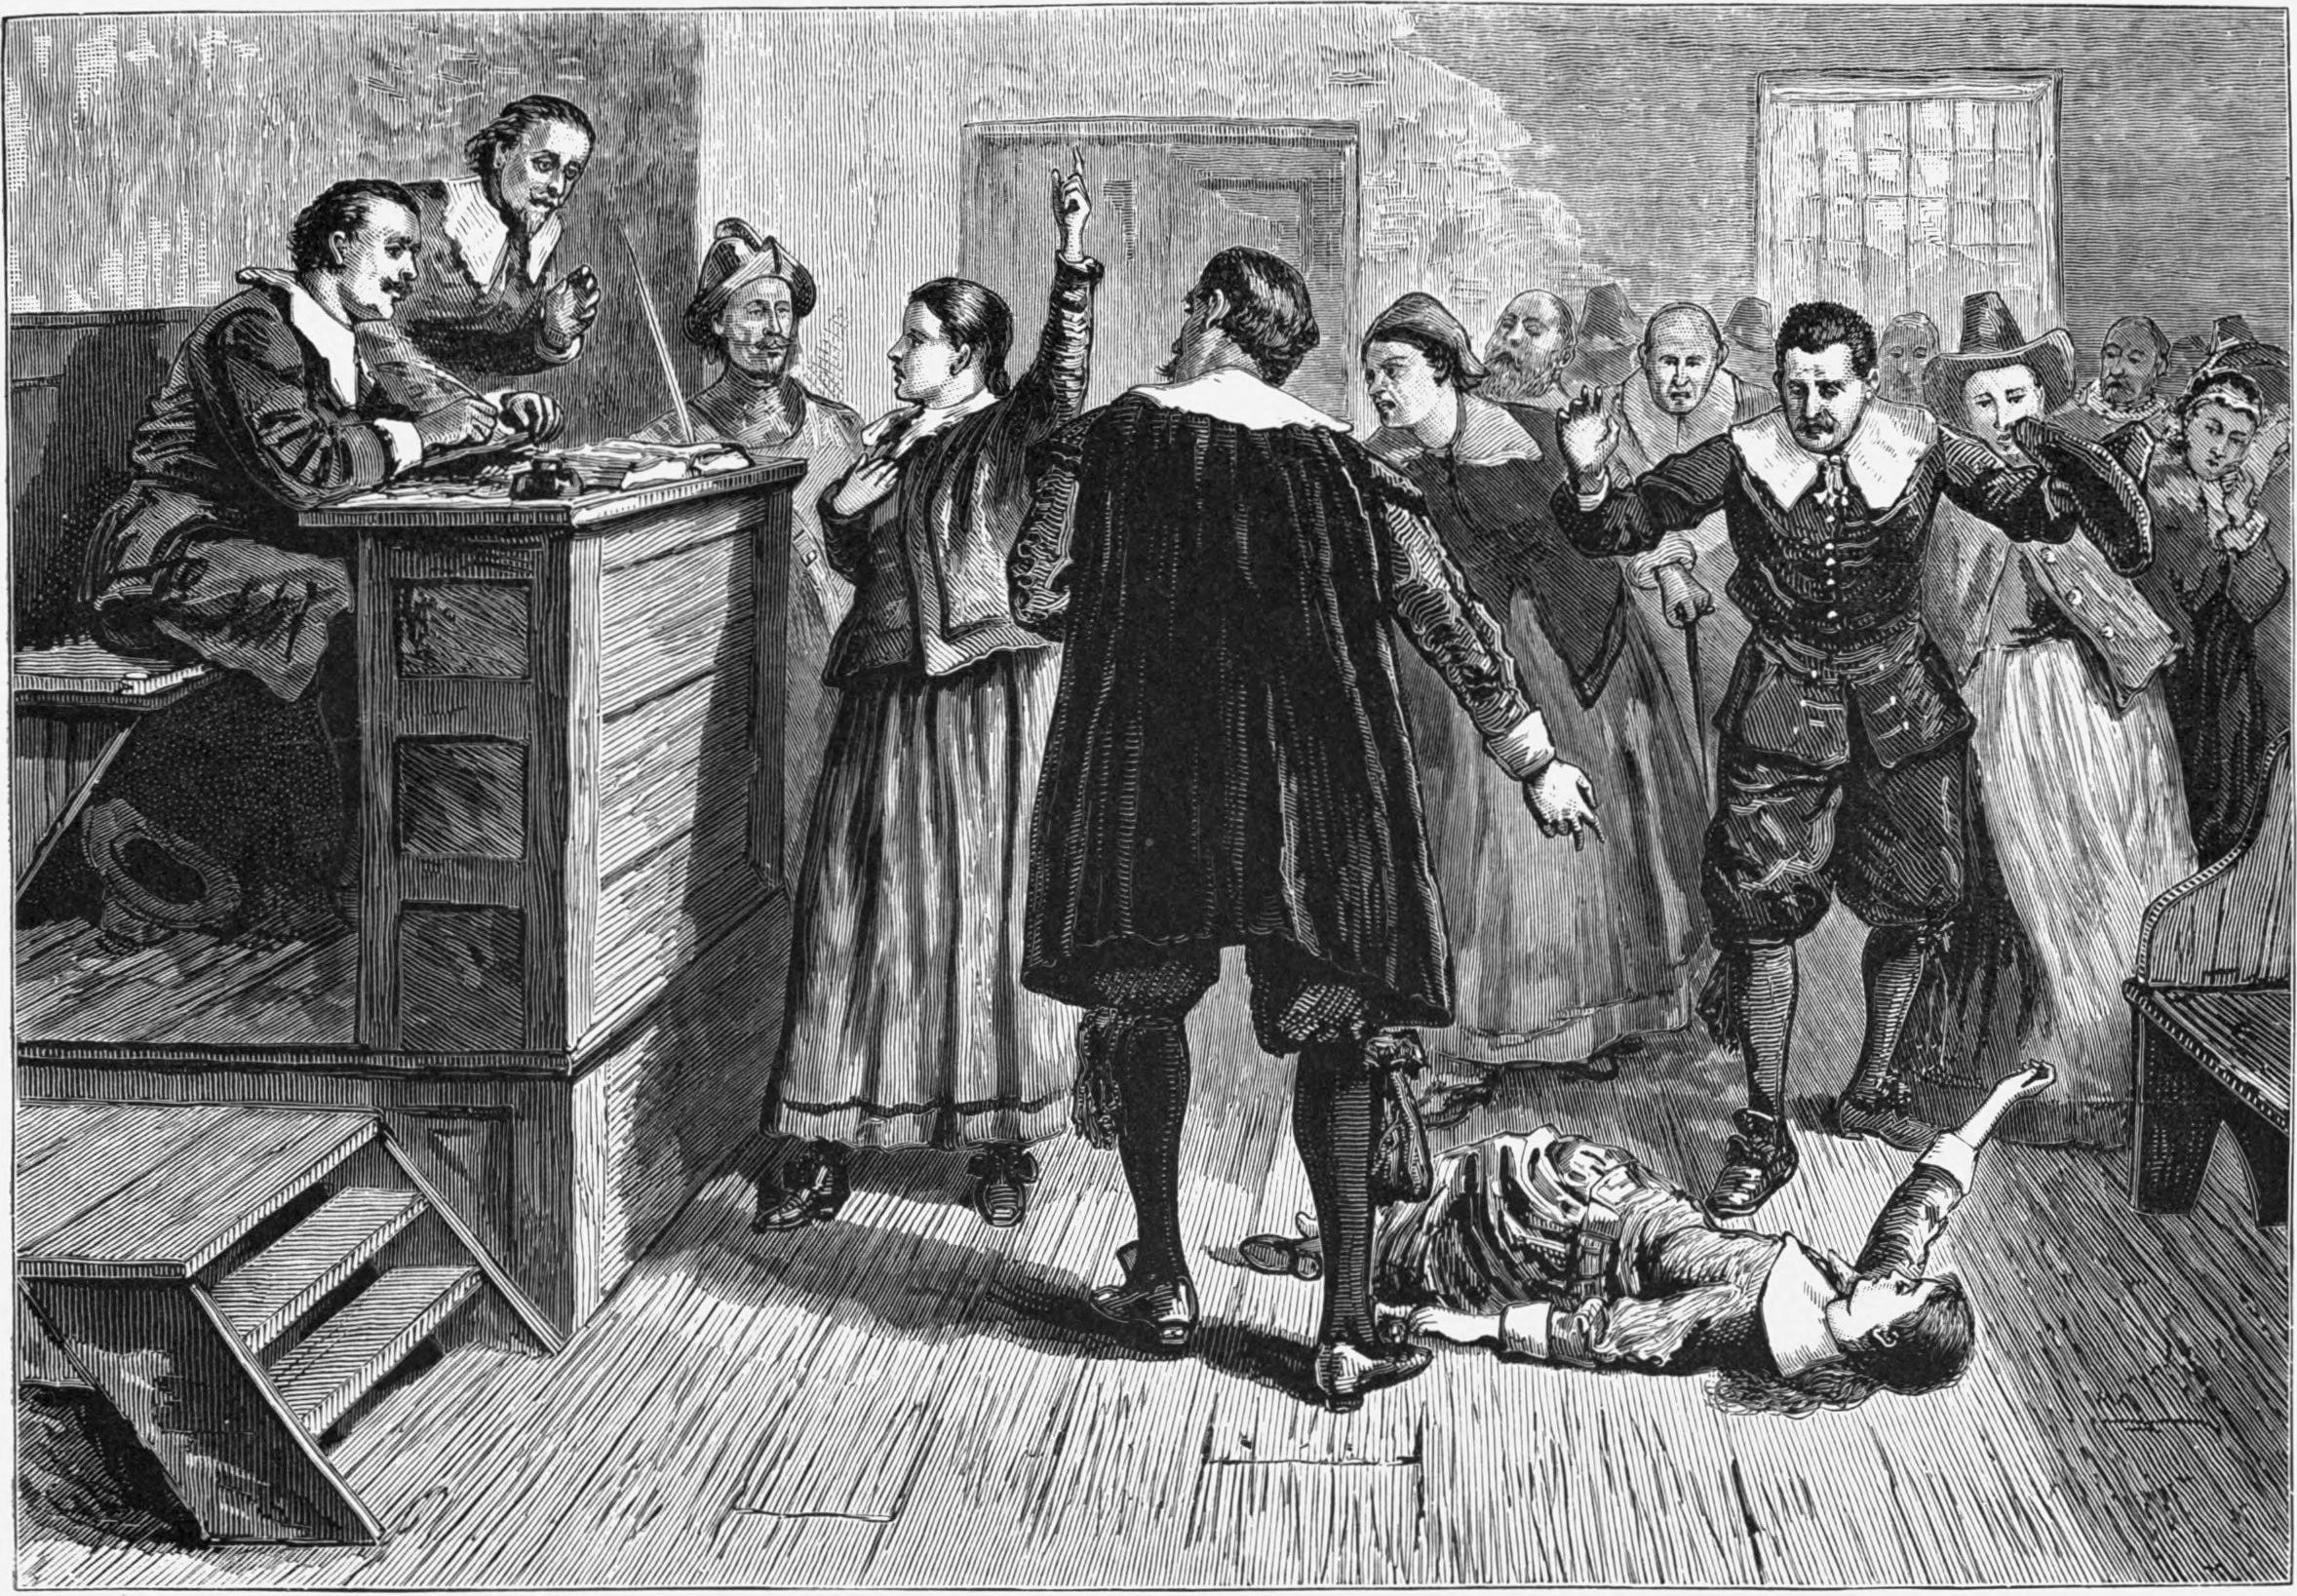 Salem witch trials: a girl lays on the ground as a courtroom full of people point and gesture.